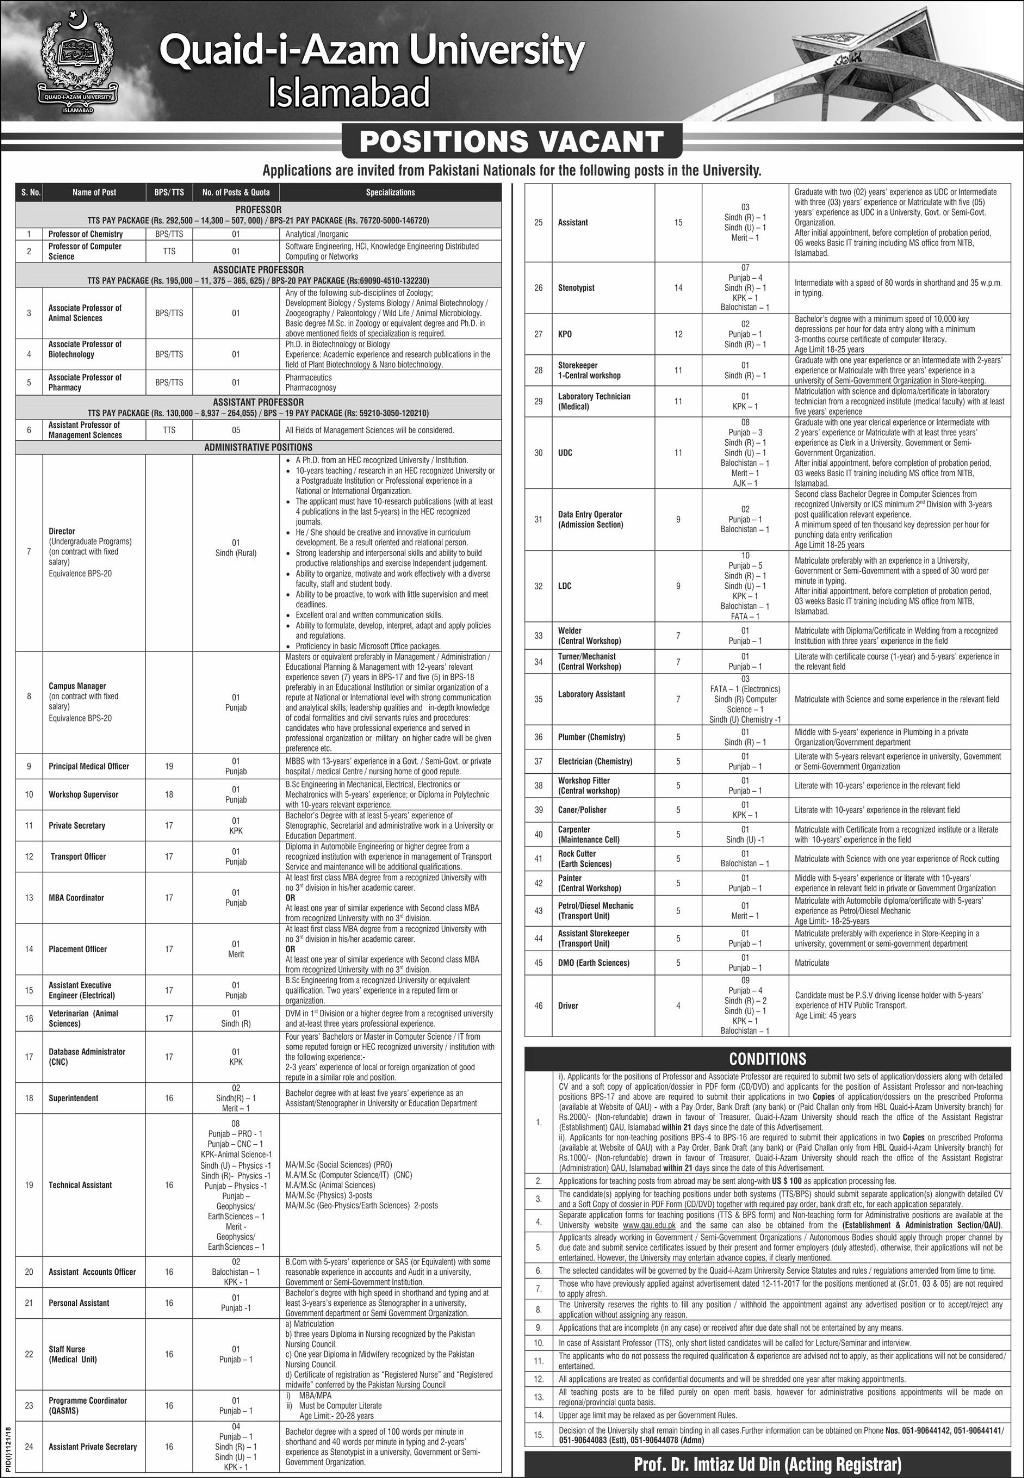 Quaid i Azam University Islamabad Jobs | Application Form Download | September